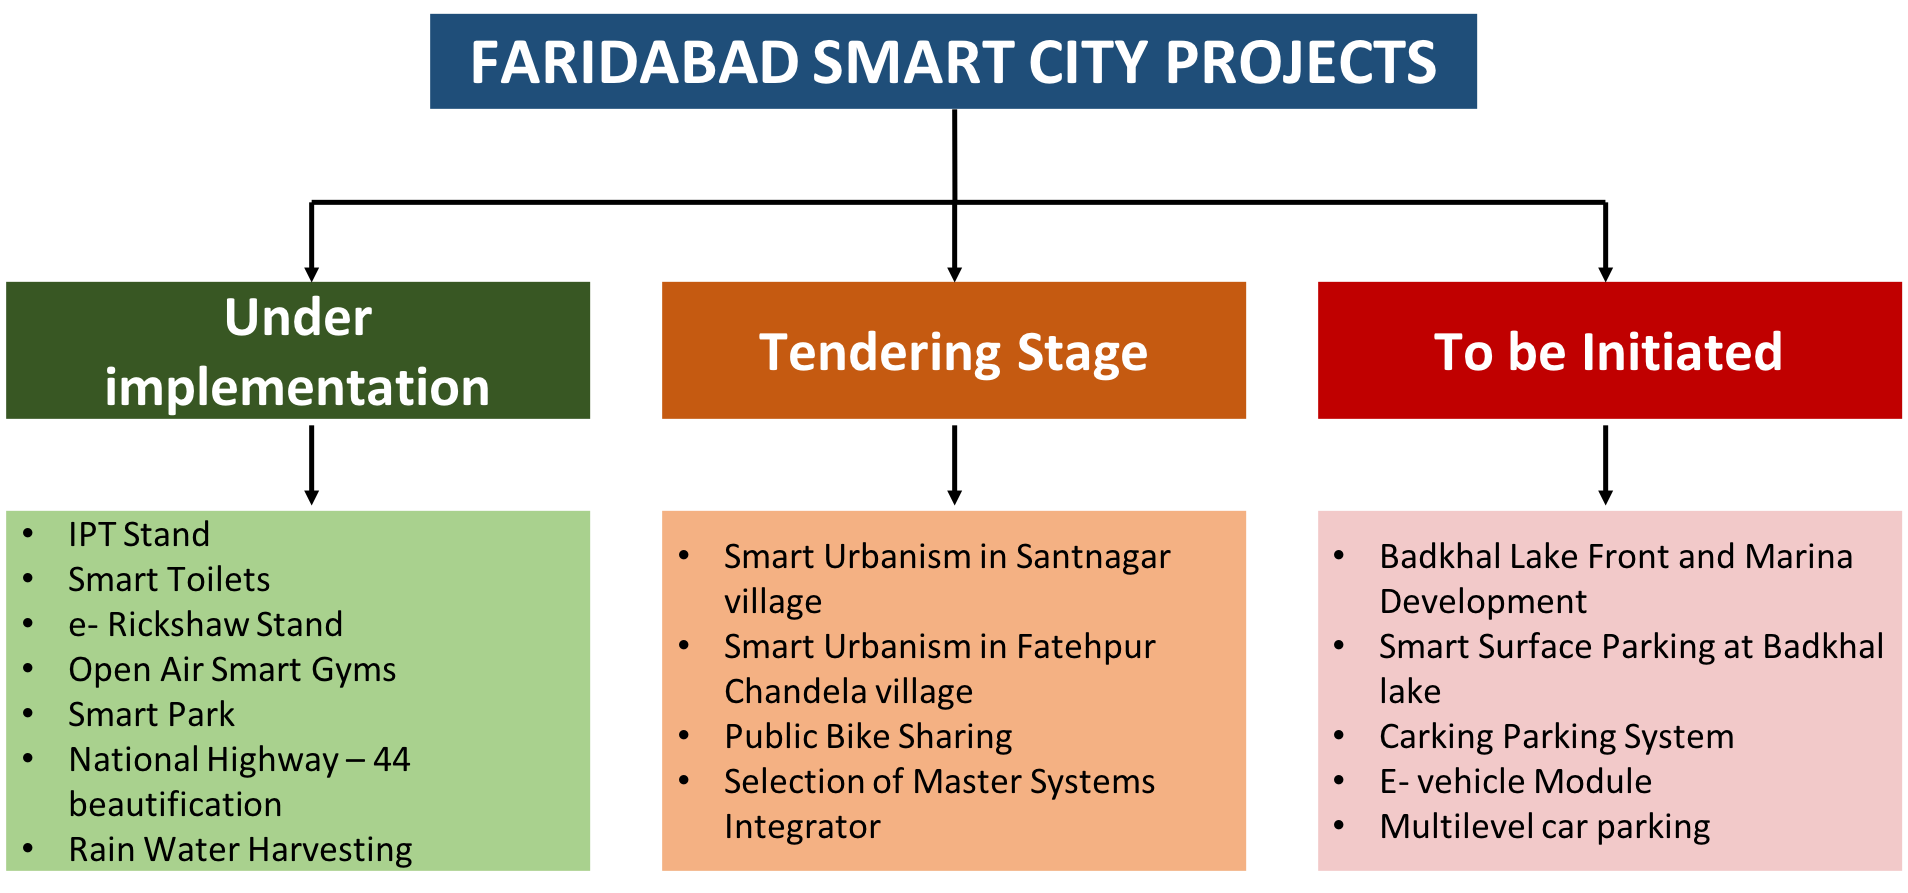 Fig. 1: Project implementation status in Faridabad under Smart City Mission.